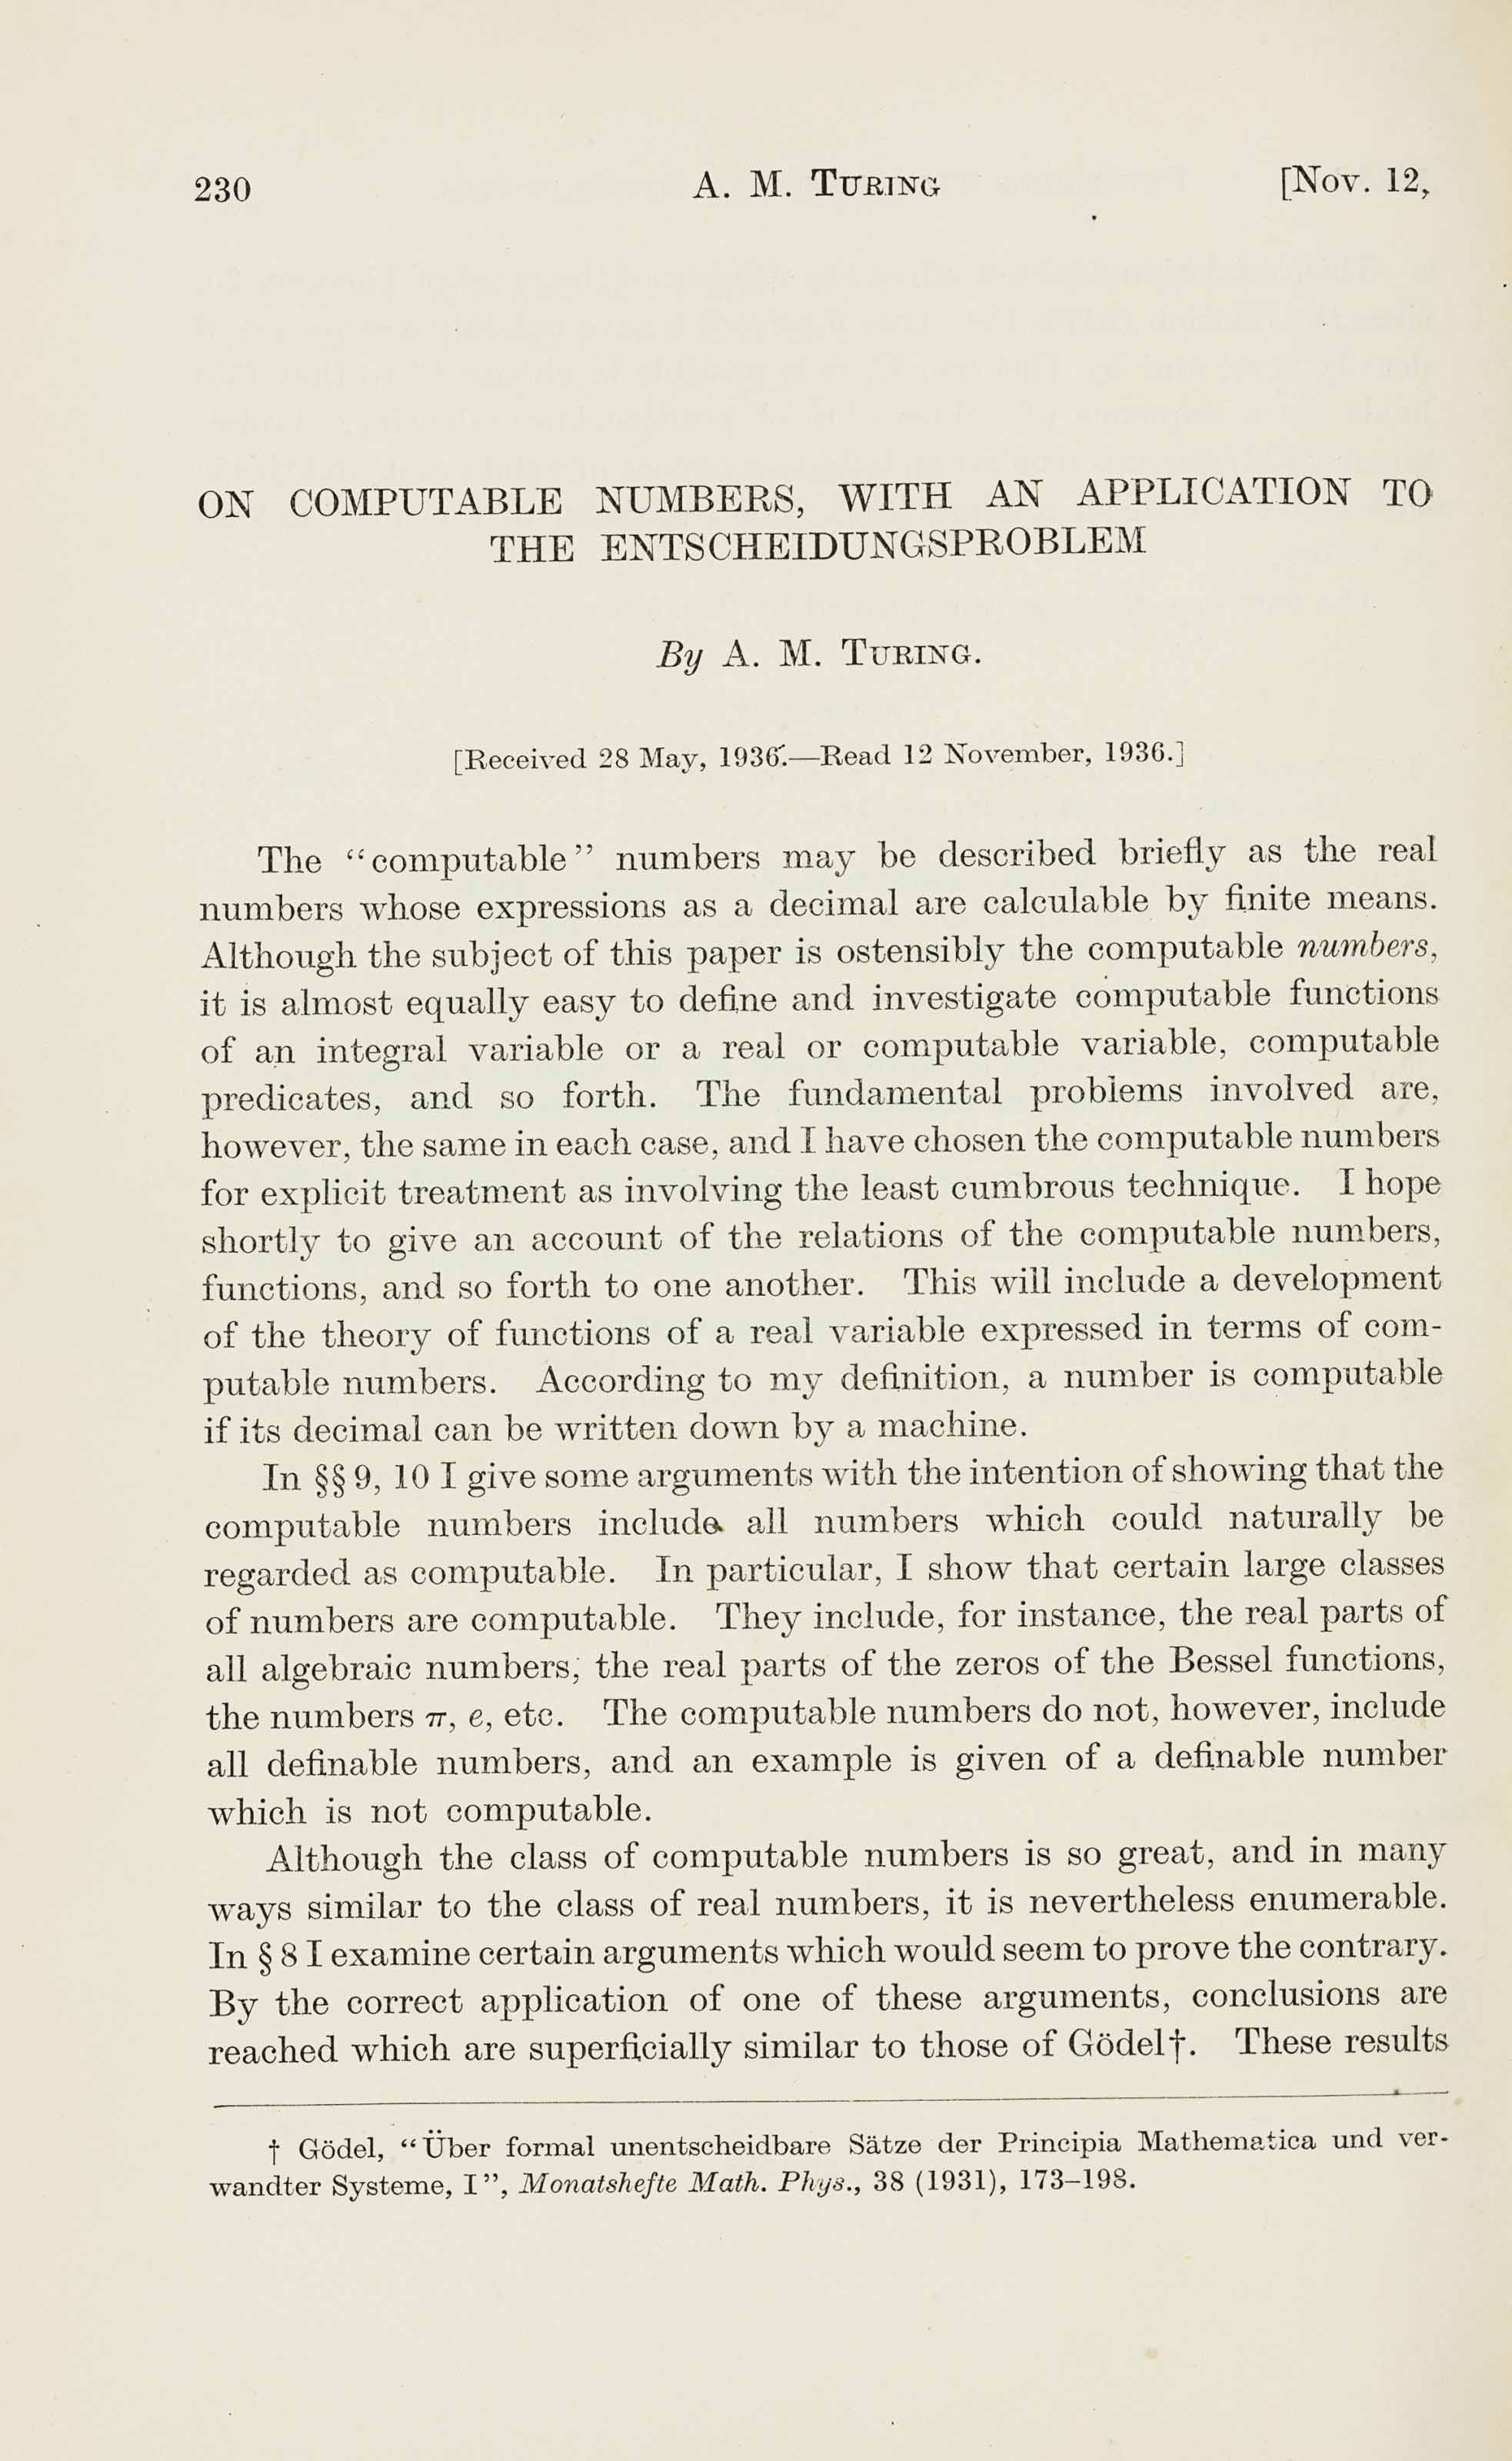 """TURING, Alan Mathison (1912-1954). """"On Computable Numbers, with an Application to the Entscheidungsproblem."""" In Proceedings of the London Mathematical Society, Second Series, Vol. 42, pp.230-265. London, 1937."""